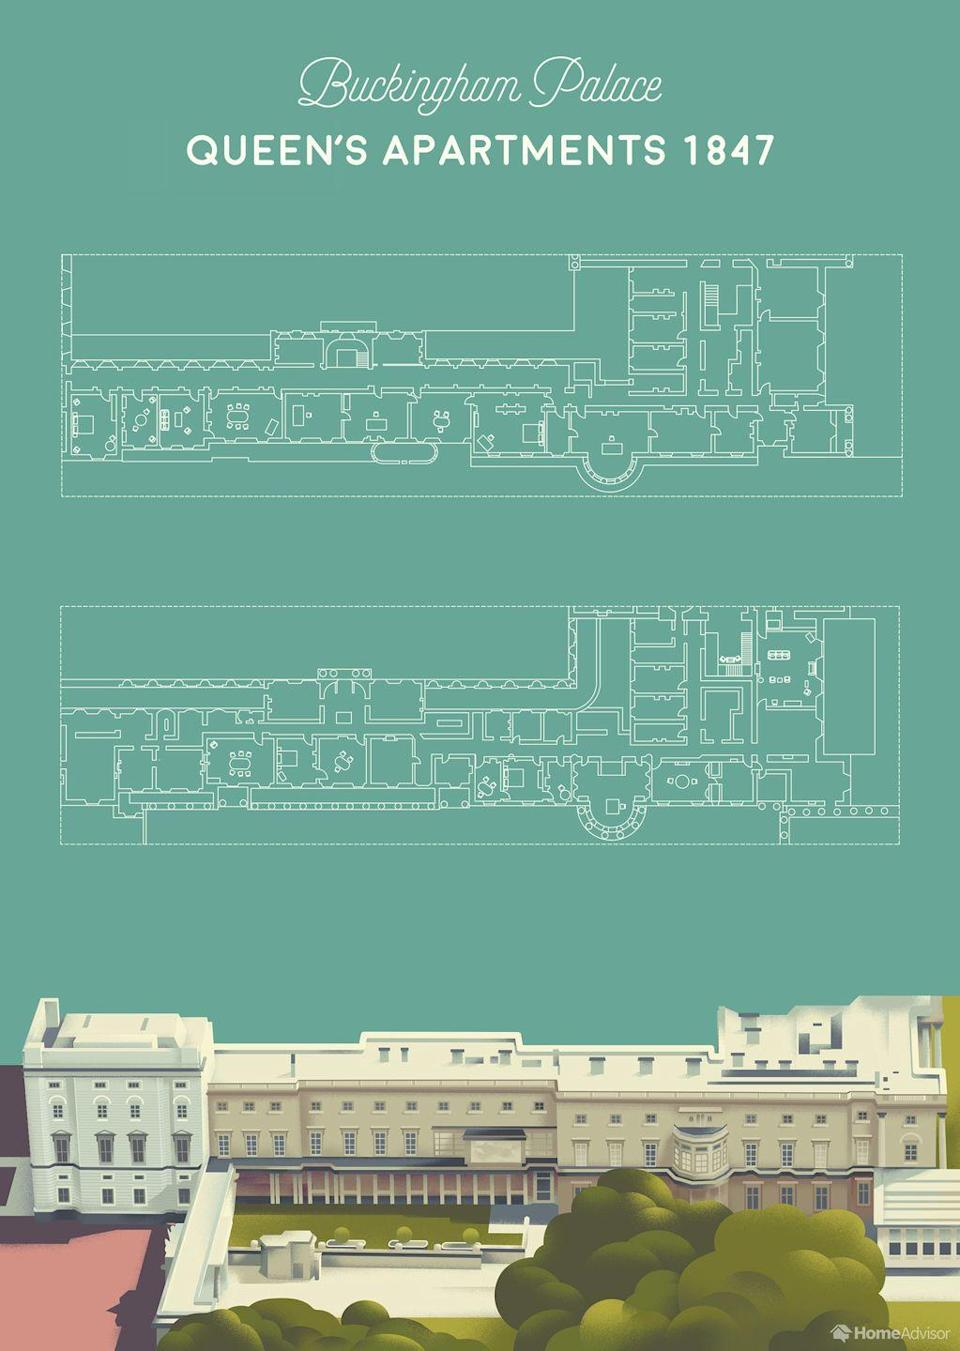 <p>The second of the three main sections of Buckingham Palace identified by the HomeAdvisor researchers are the Queen's Apartments. Even though the palace boasts a staggering 775 rooms, the six that make up the Queen's private apartments are definitely the ones in which the monarch spends the most time. </p><p>The Queen, like pretty much every member of the British royal family, values her privacy greatly, so very few pictures from this section of the palace have been made public over the years. The only exception to the intense privacy rule in this section Buckingham Palace is the Audience Room, where the Queen meets weekly with Prime Minister and for private meetings with the Chancellor of the Exchequer before a new budget is announced. The Queen has also been known to hold audiences here with visiting heads of state who aren't on an official state visit. </p>